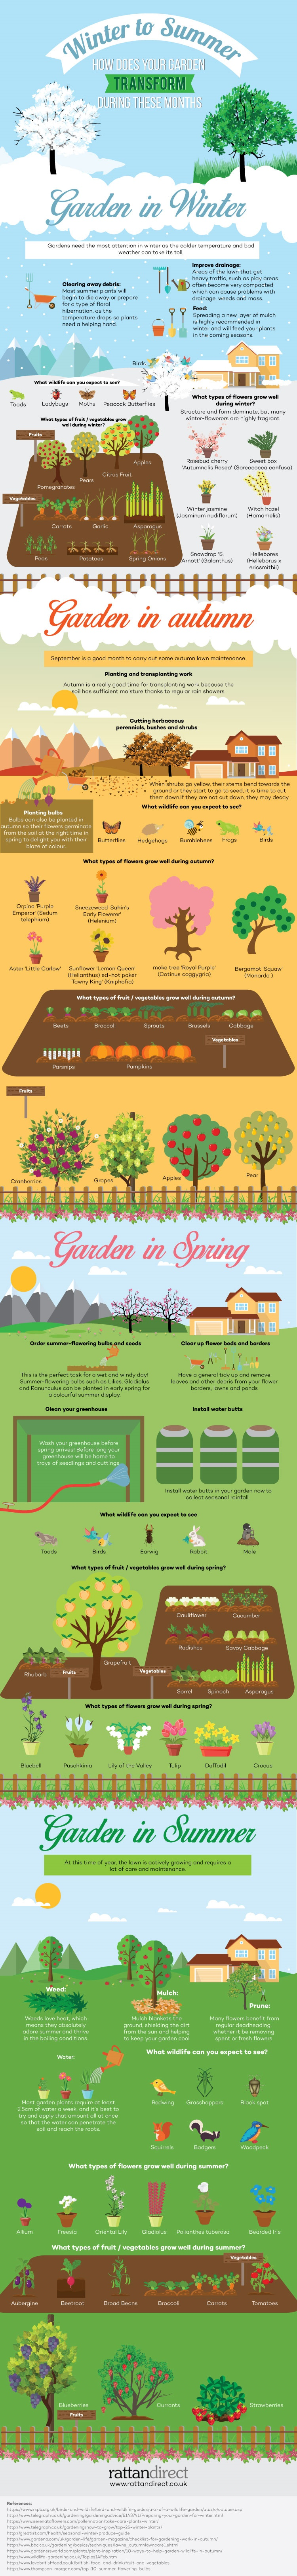 garden, seasons, our world, #livinglifewild, environment, gardening, Rattan Direct, infographic